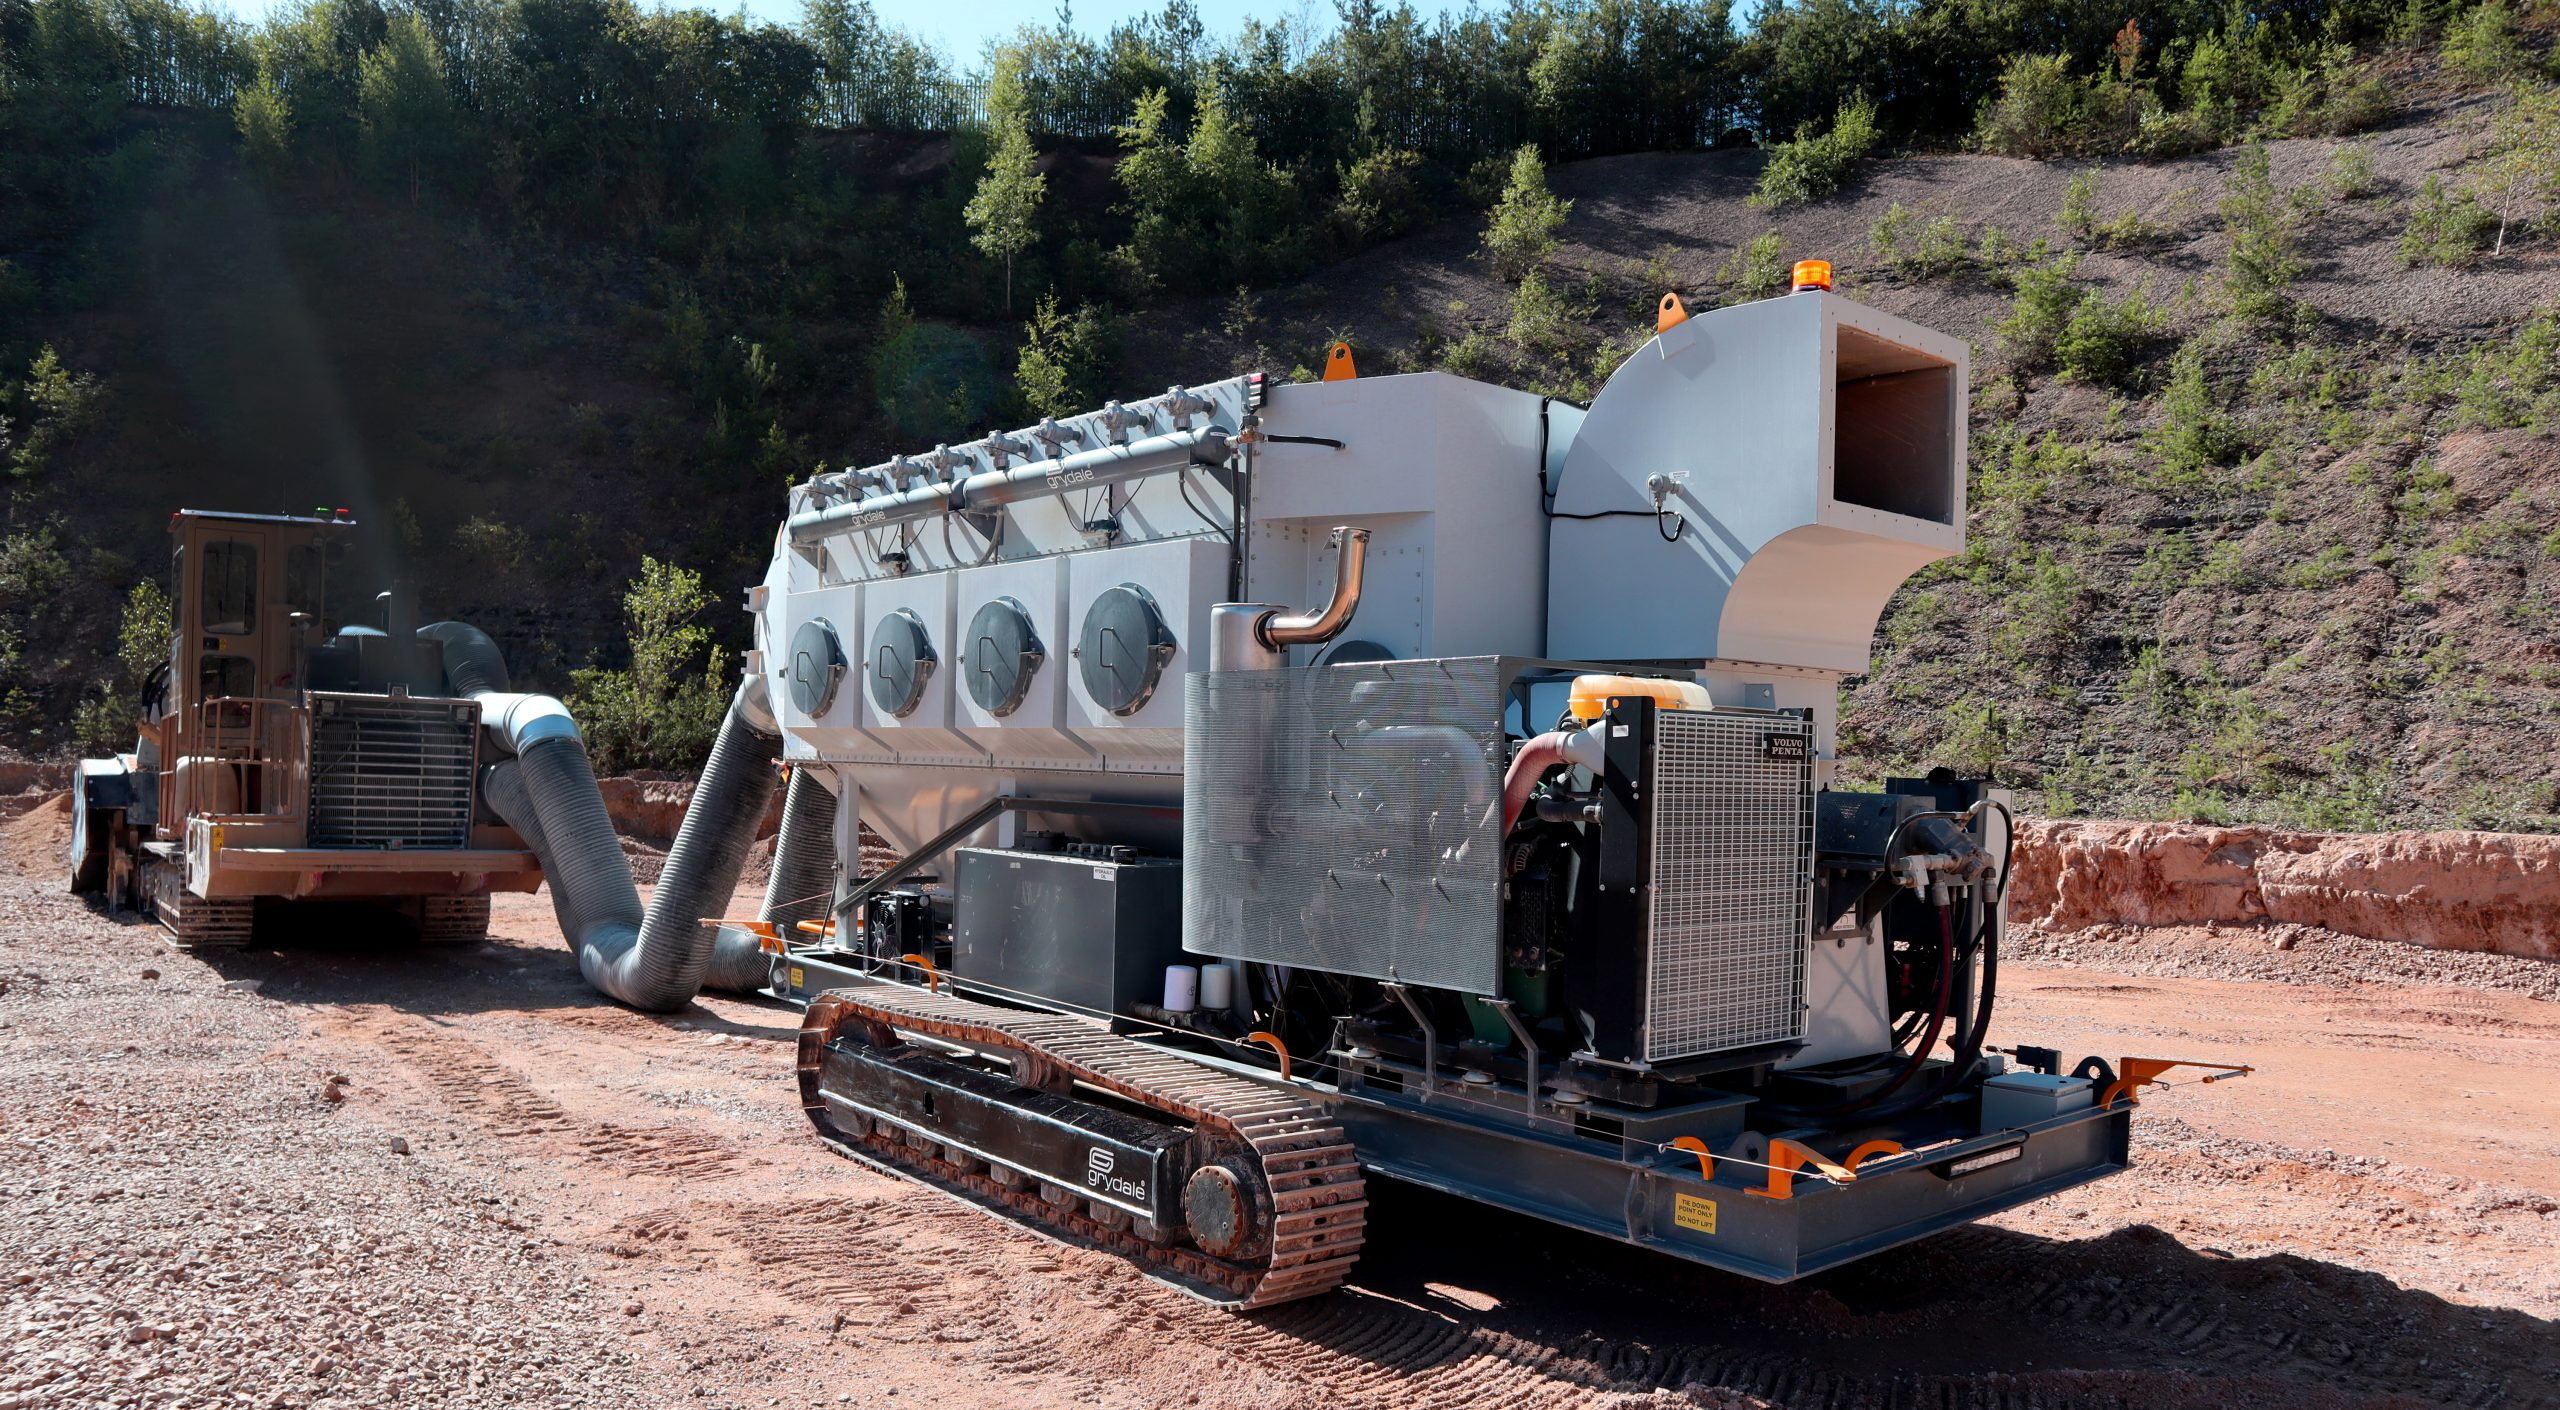 JMS-30 Mobile Dust Collector connected to Rack Hawg Surface Miner